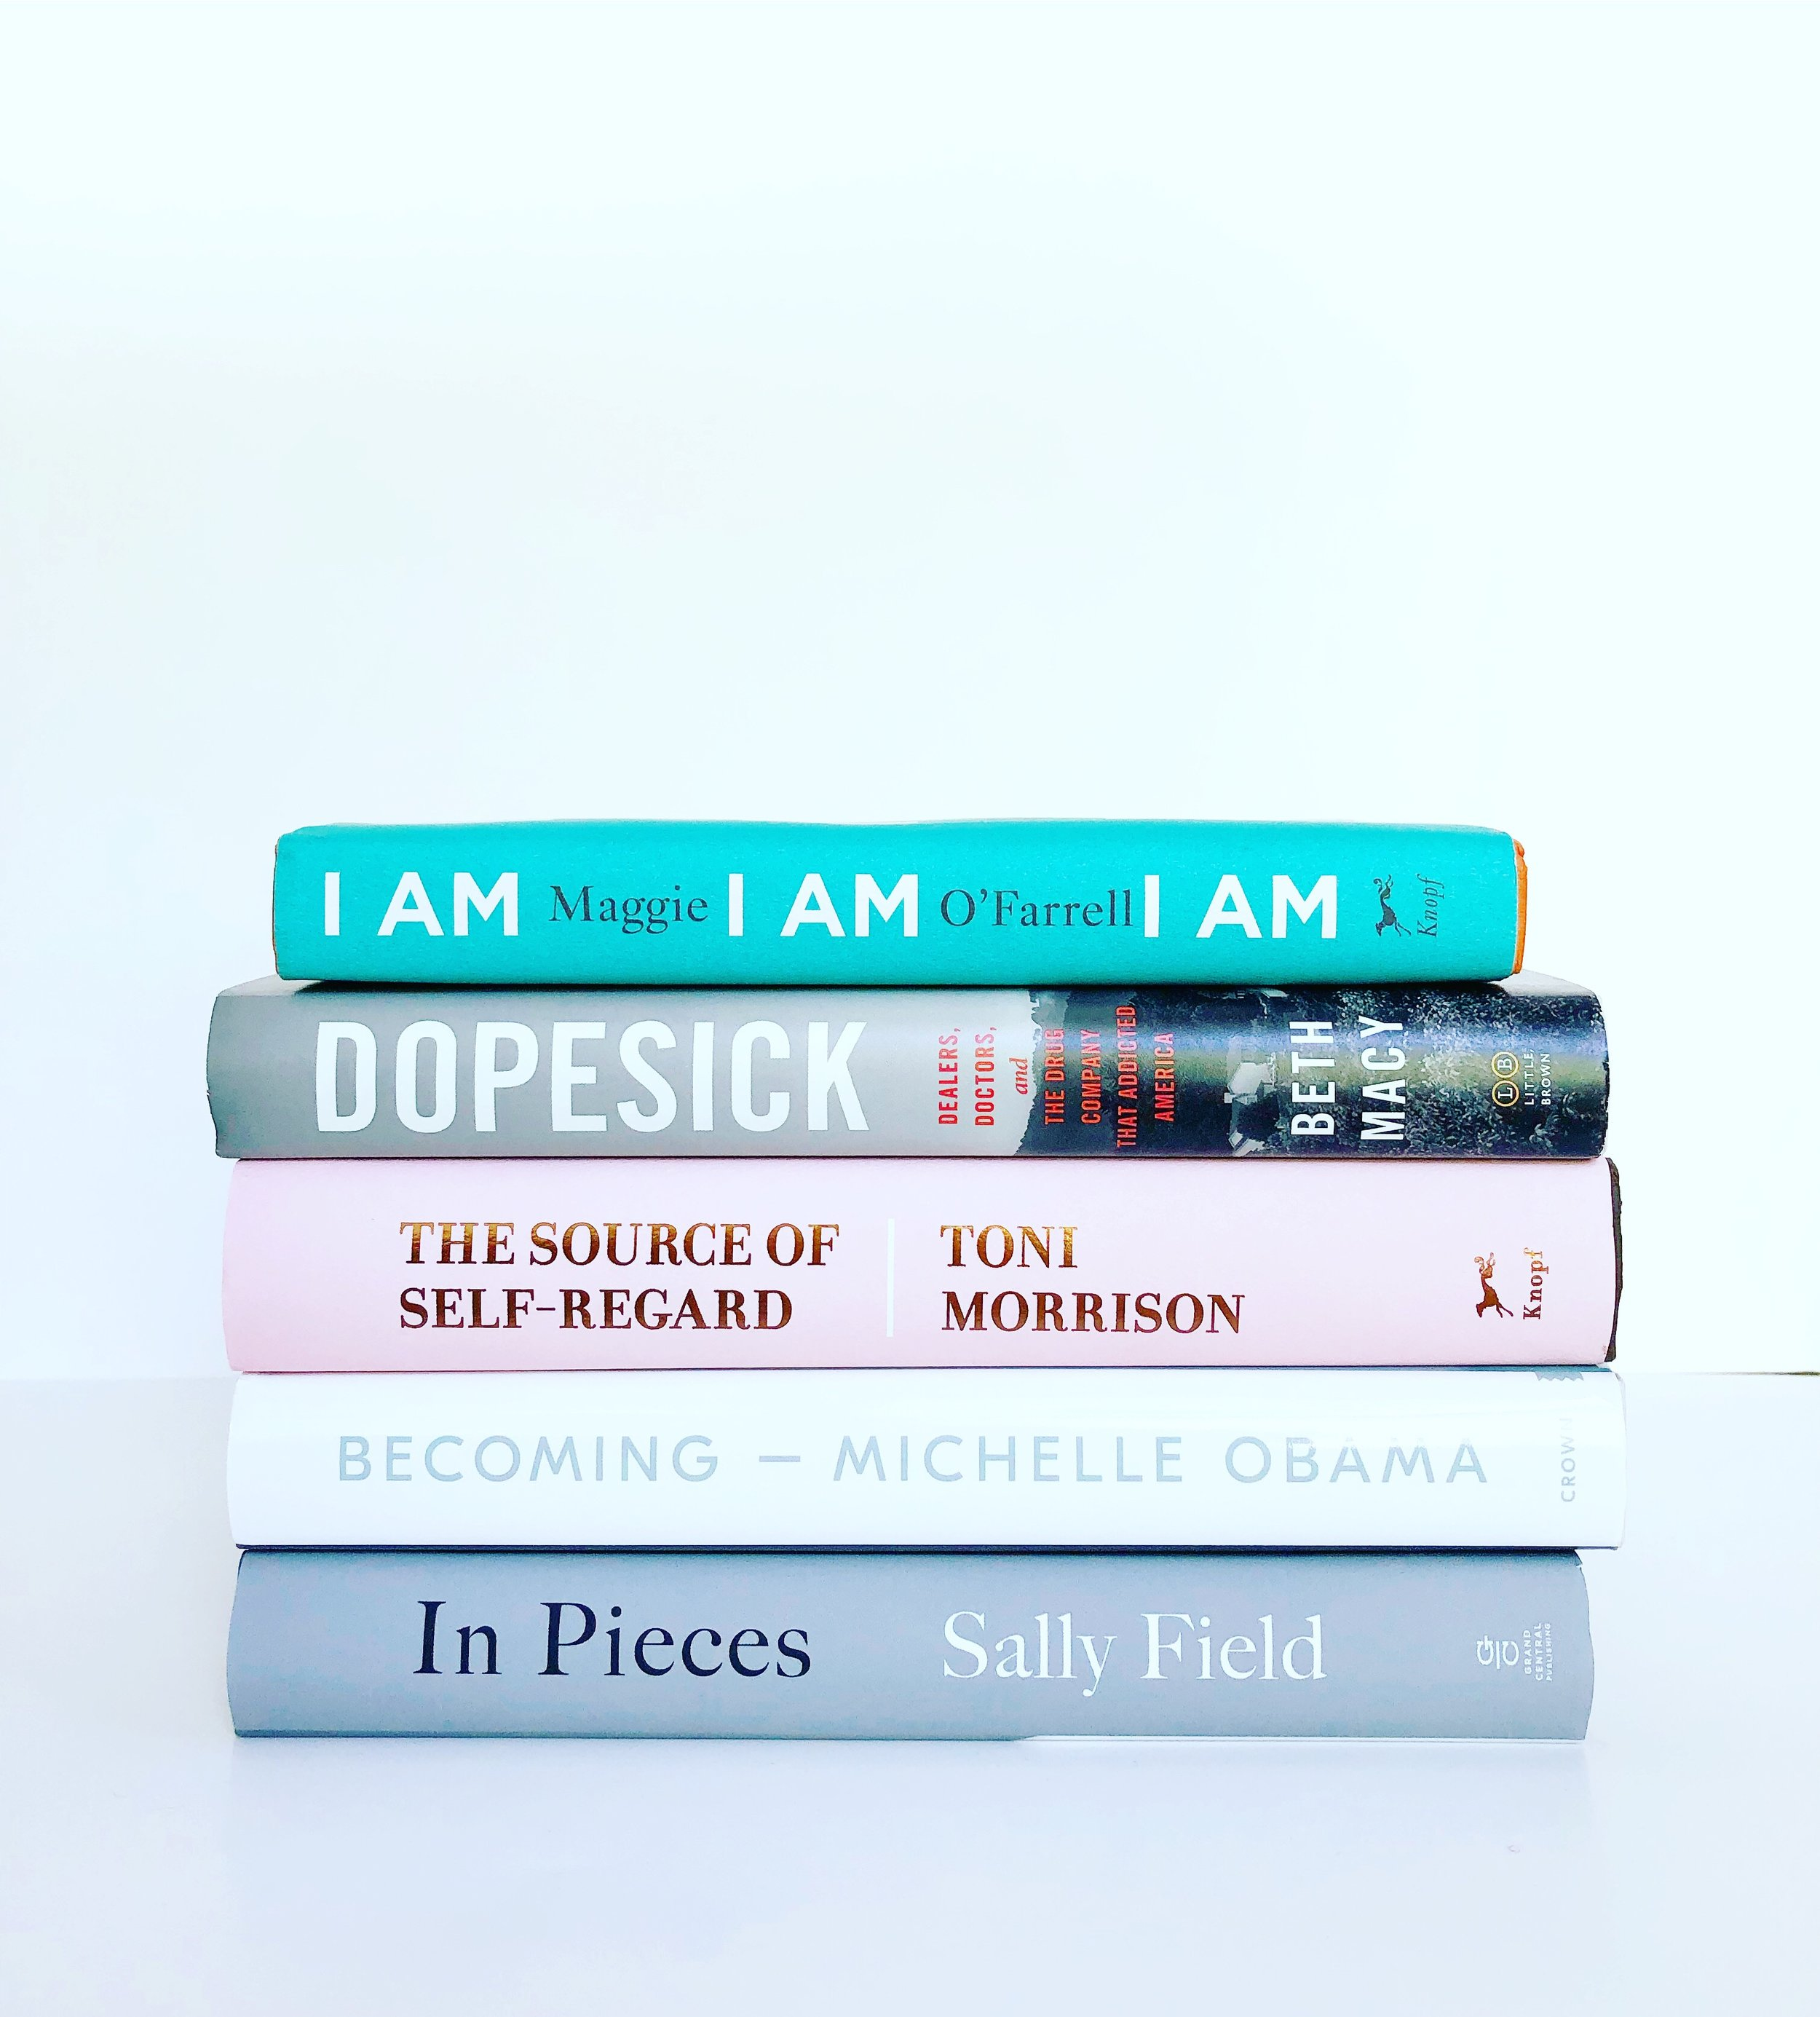 Women's Nonfiction Series - All the latest nonfiction books by women writers covering a variety of subjects and lives.